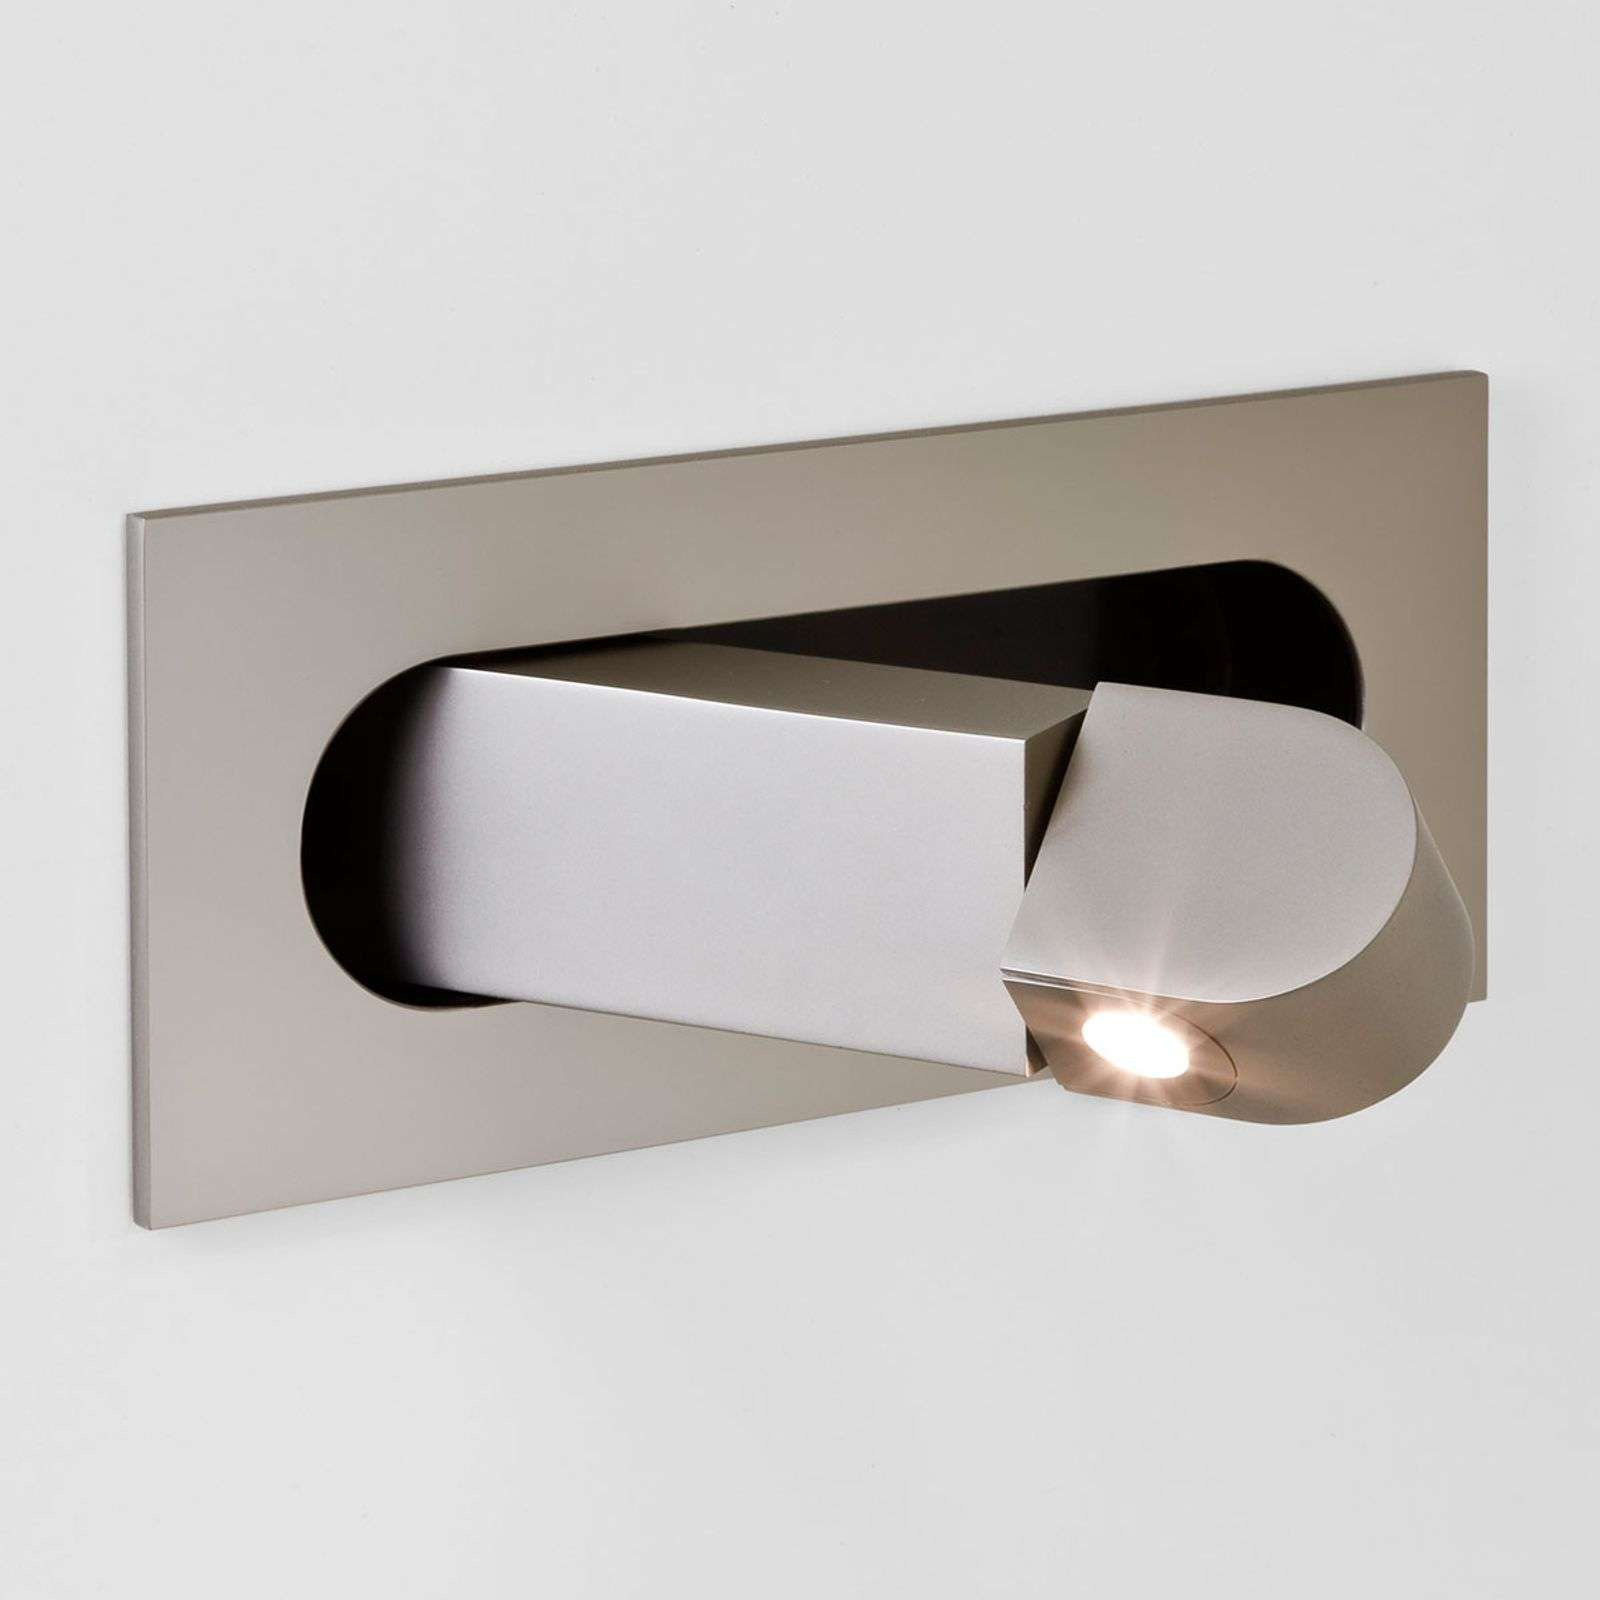 Applique LED Digit comme liseuse, nickel